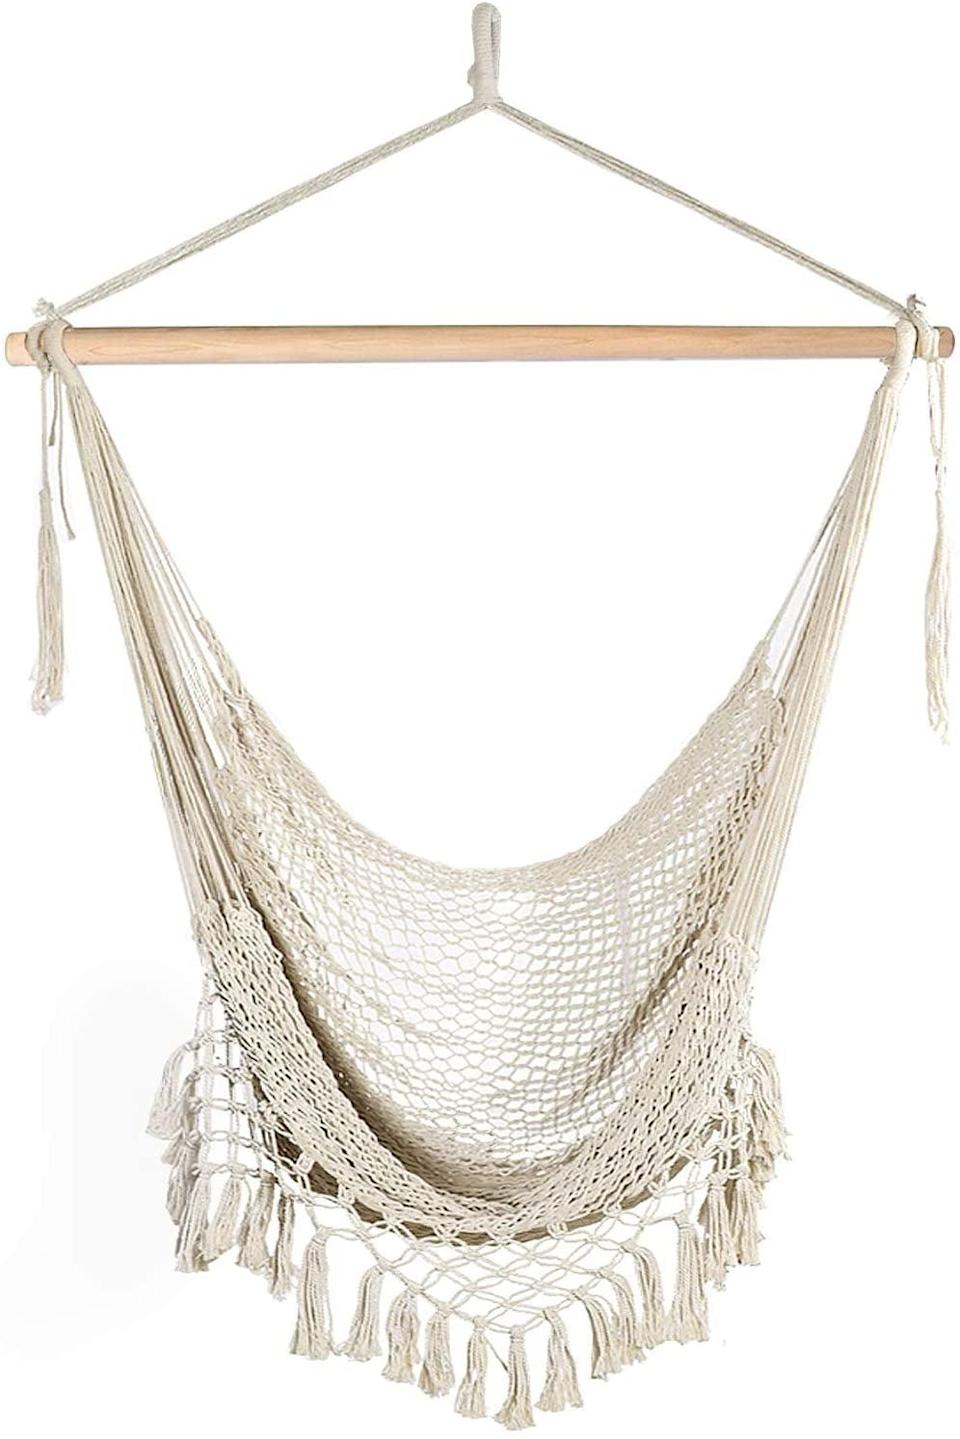 <p>You can't go wrong with the cozy and comfortable <span>Chihee Soft-Spun Cotton Hammock Chair</span> ($40).</p>